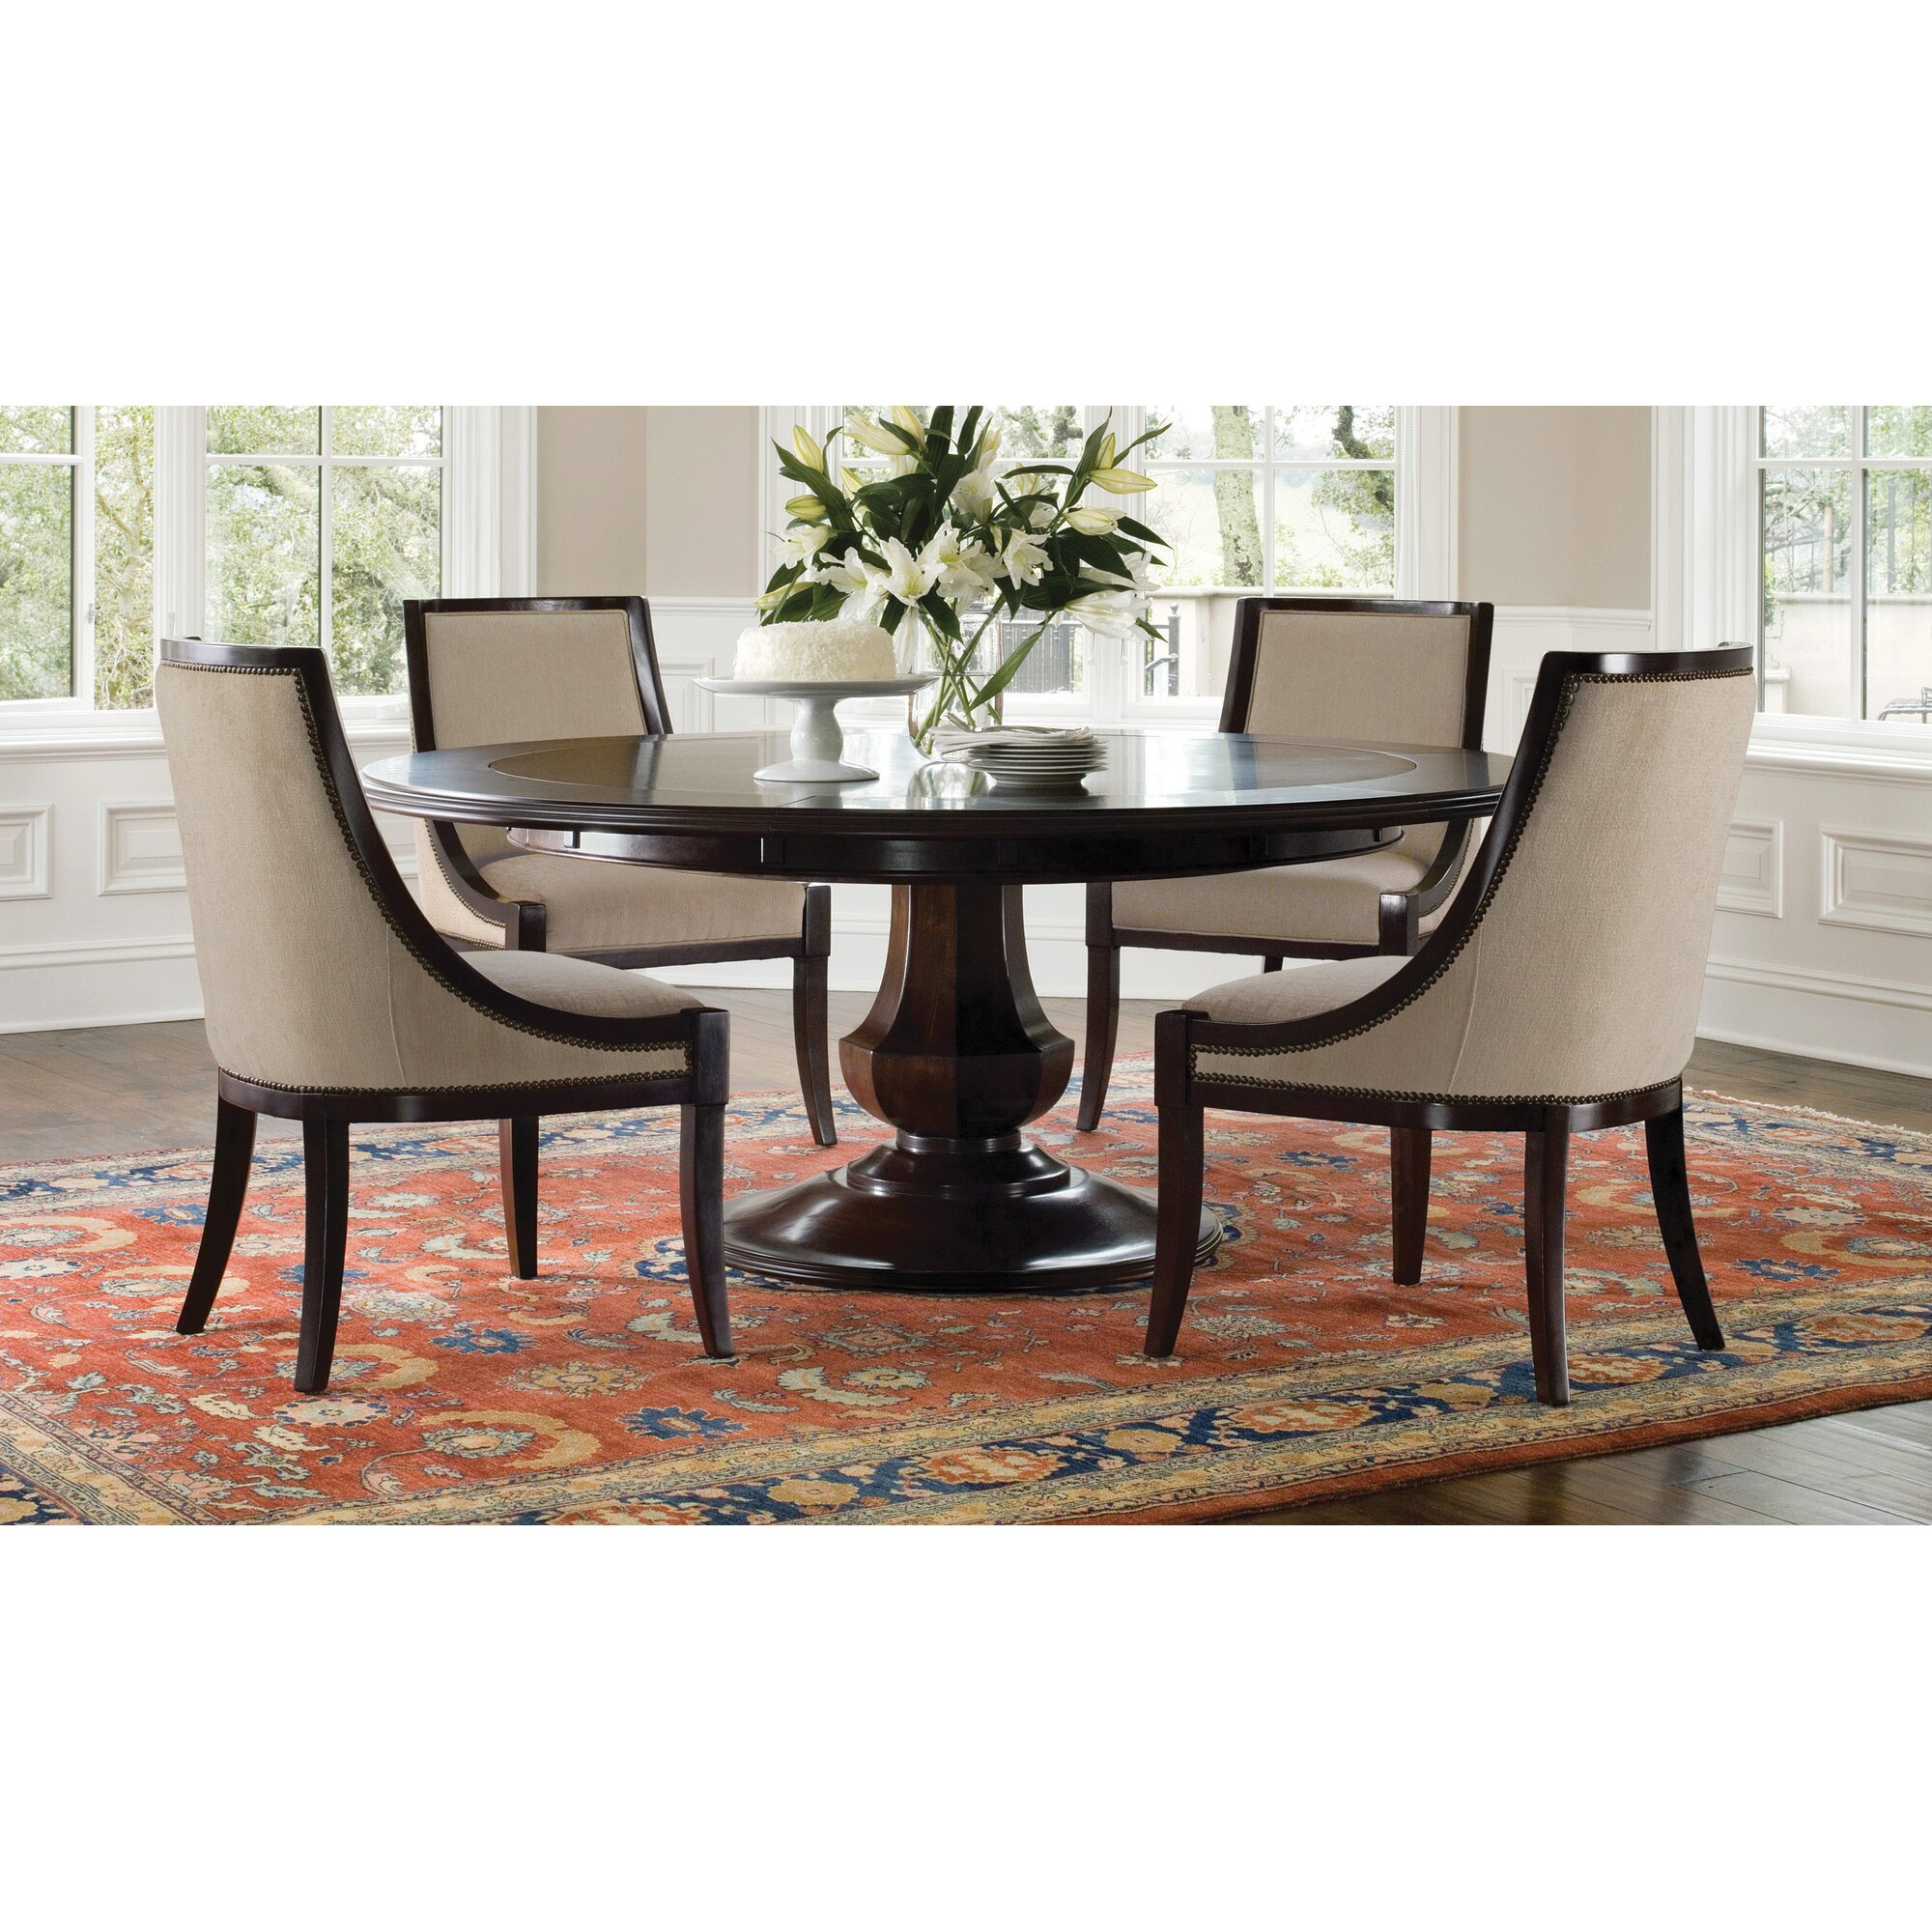 BrownstoneFurniture Sienna Extendable Dining Table & Reviews | Wayfair